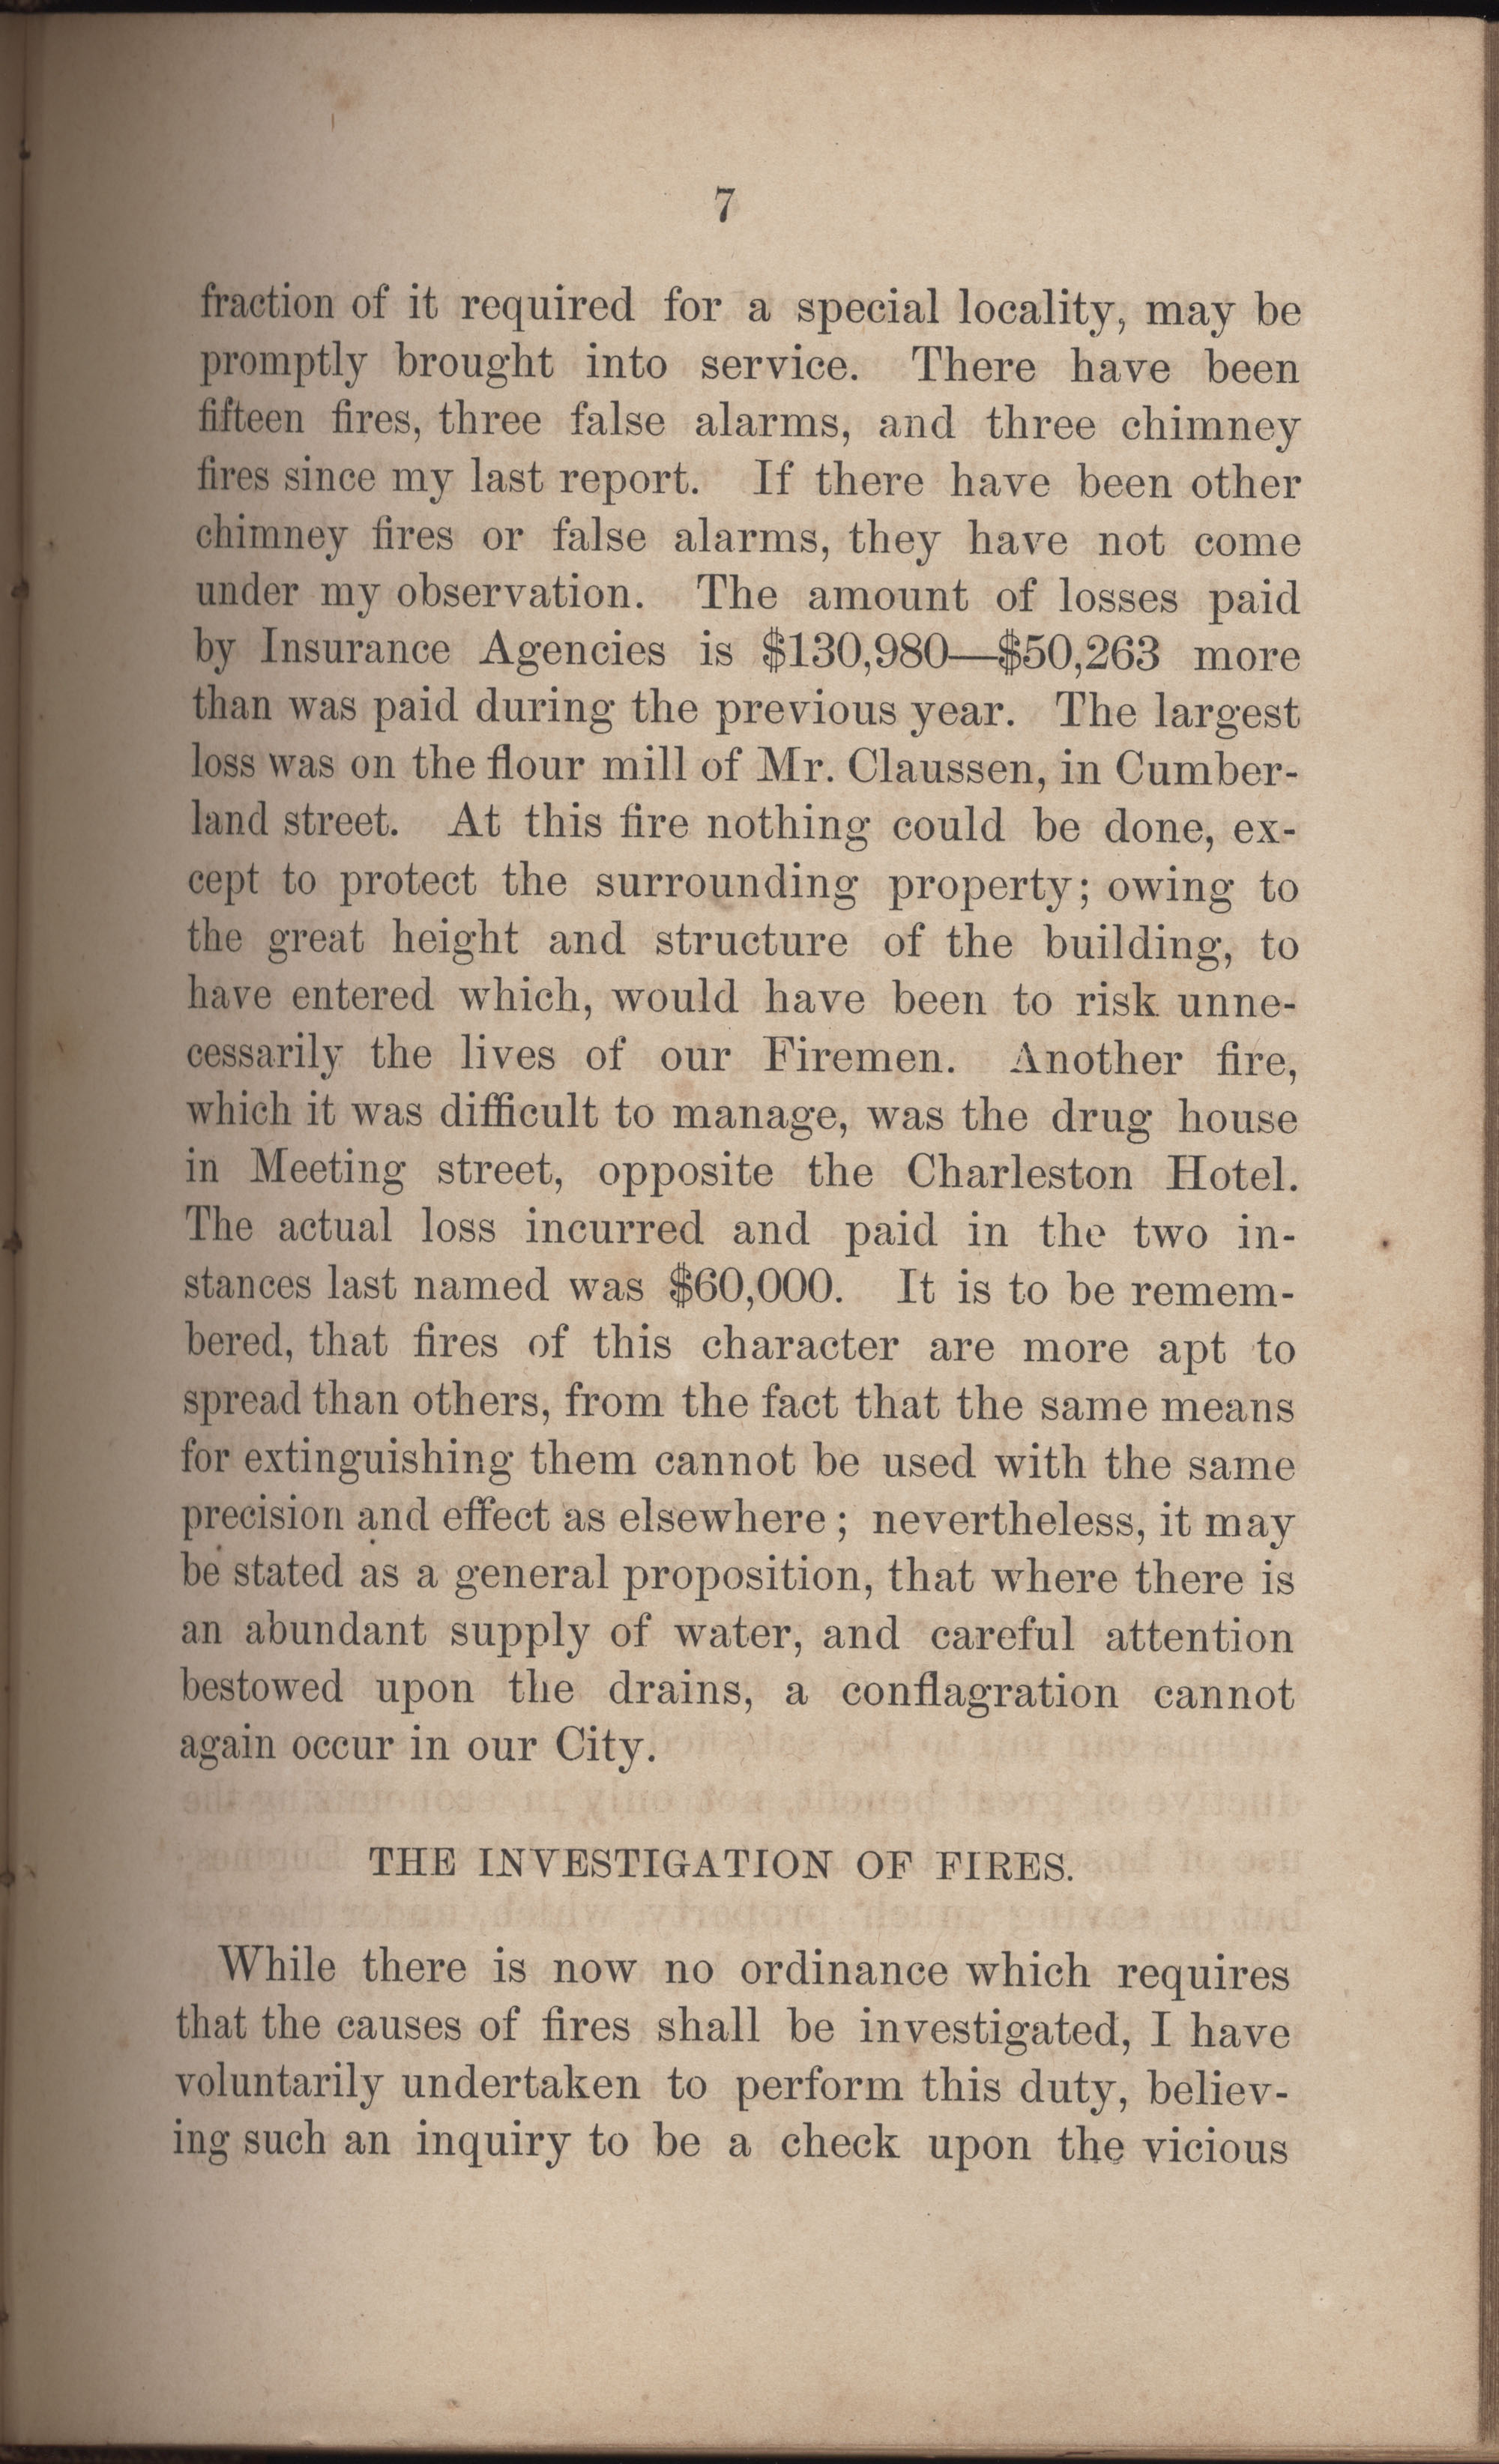 Annual Report of the Chief of the Fire Department of the City of Charleston, page 234